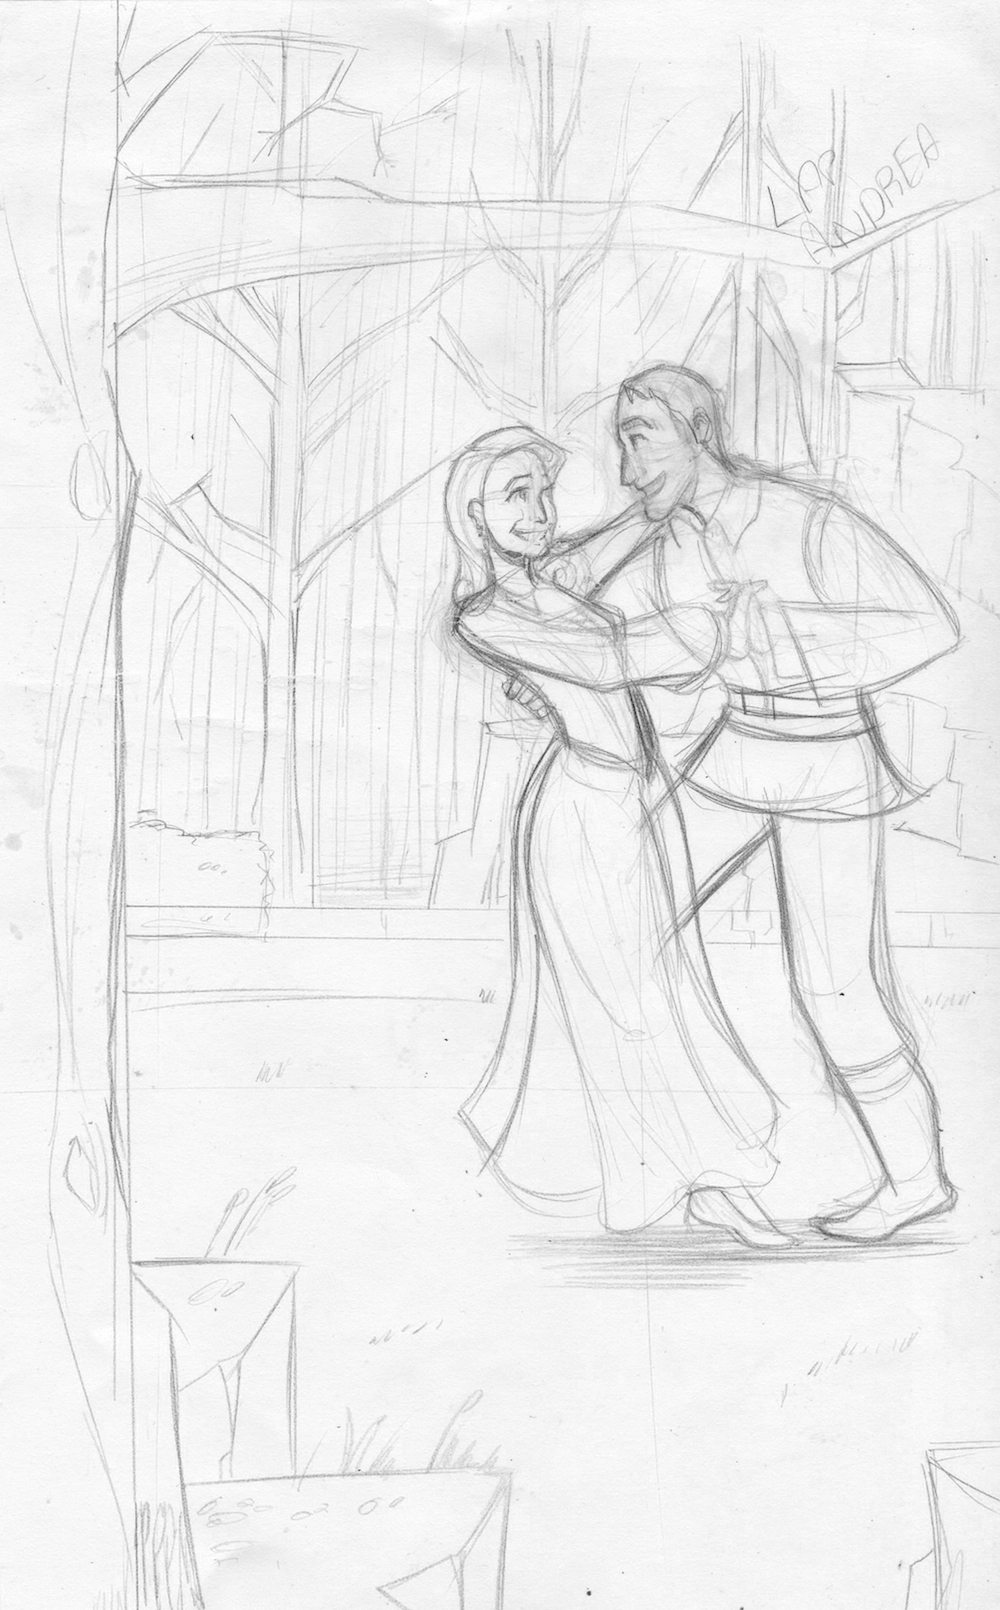 Couple-in-the-Woods-WIP-by-Silvadoray